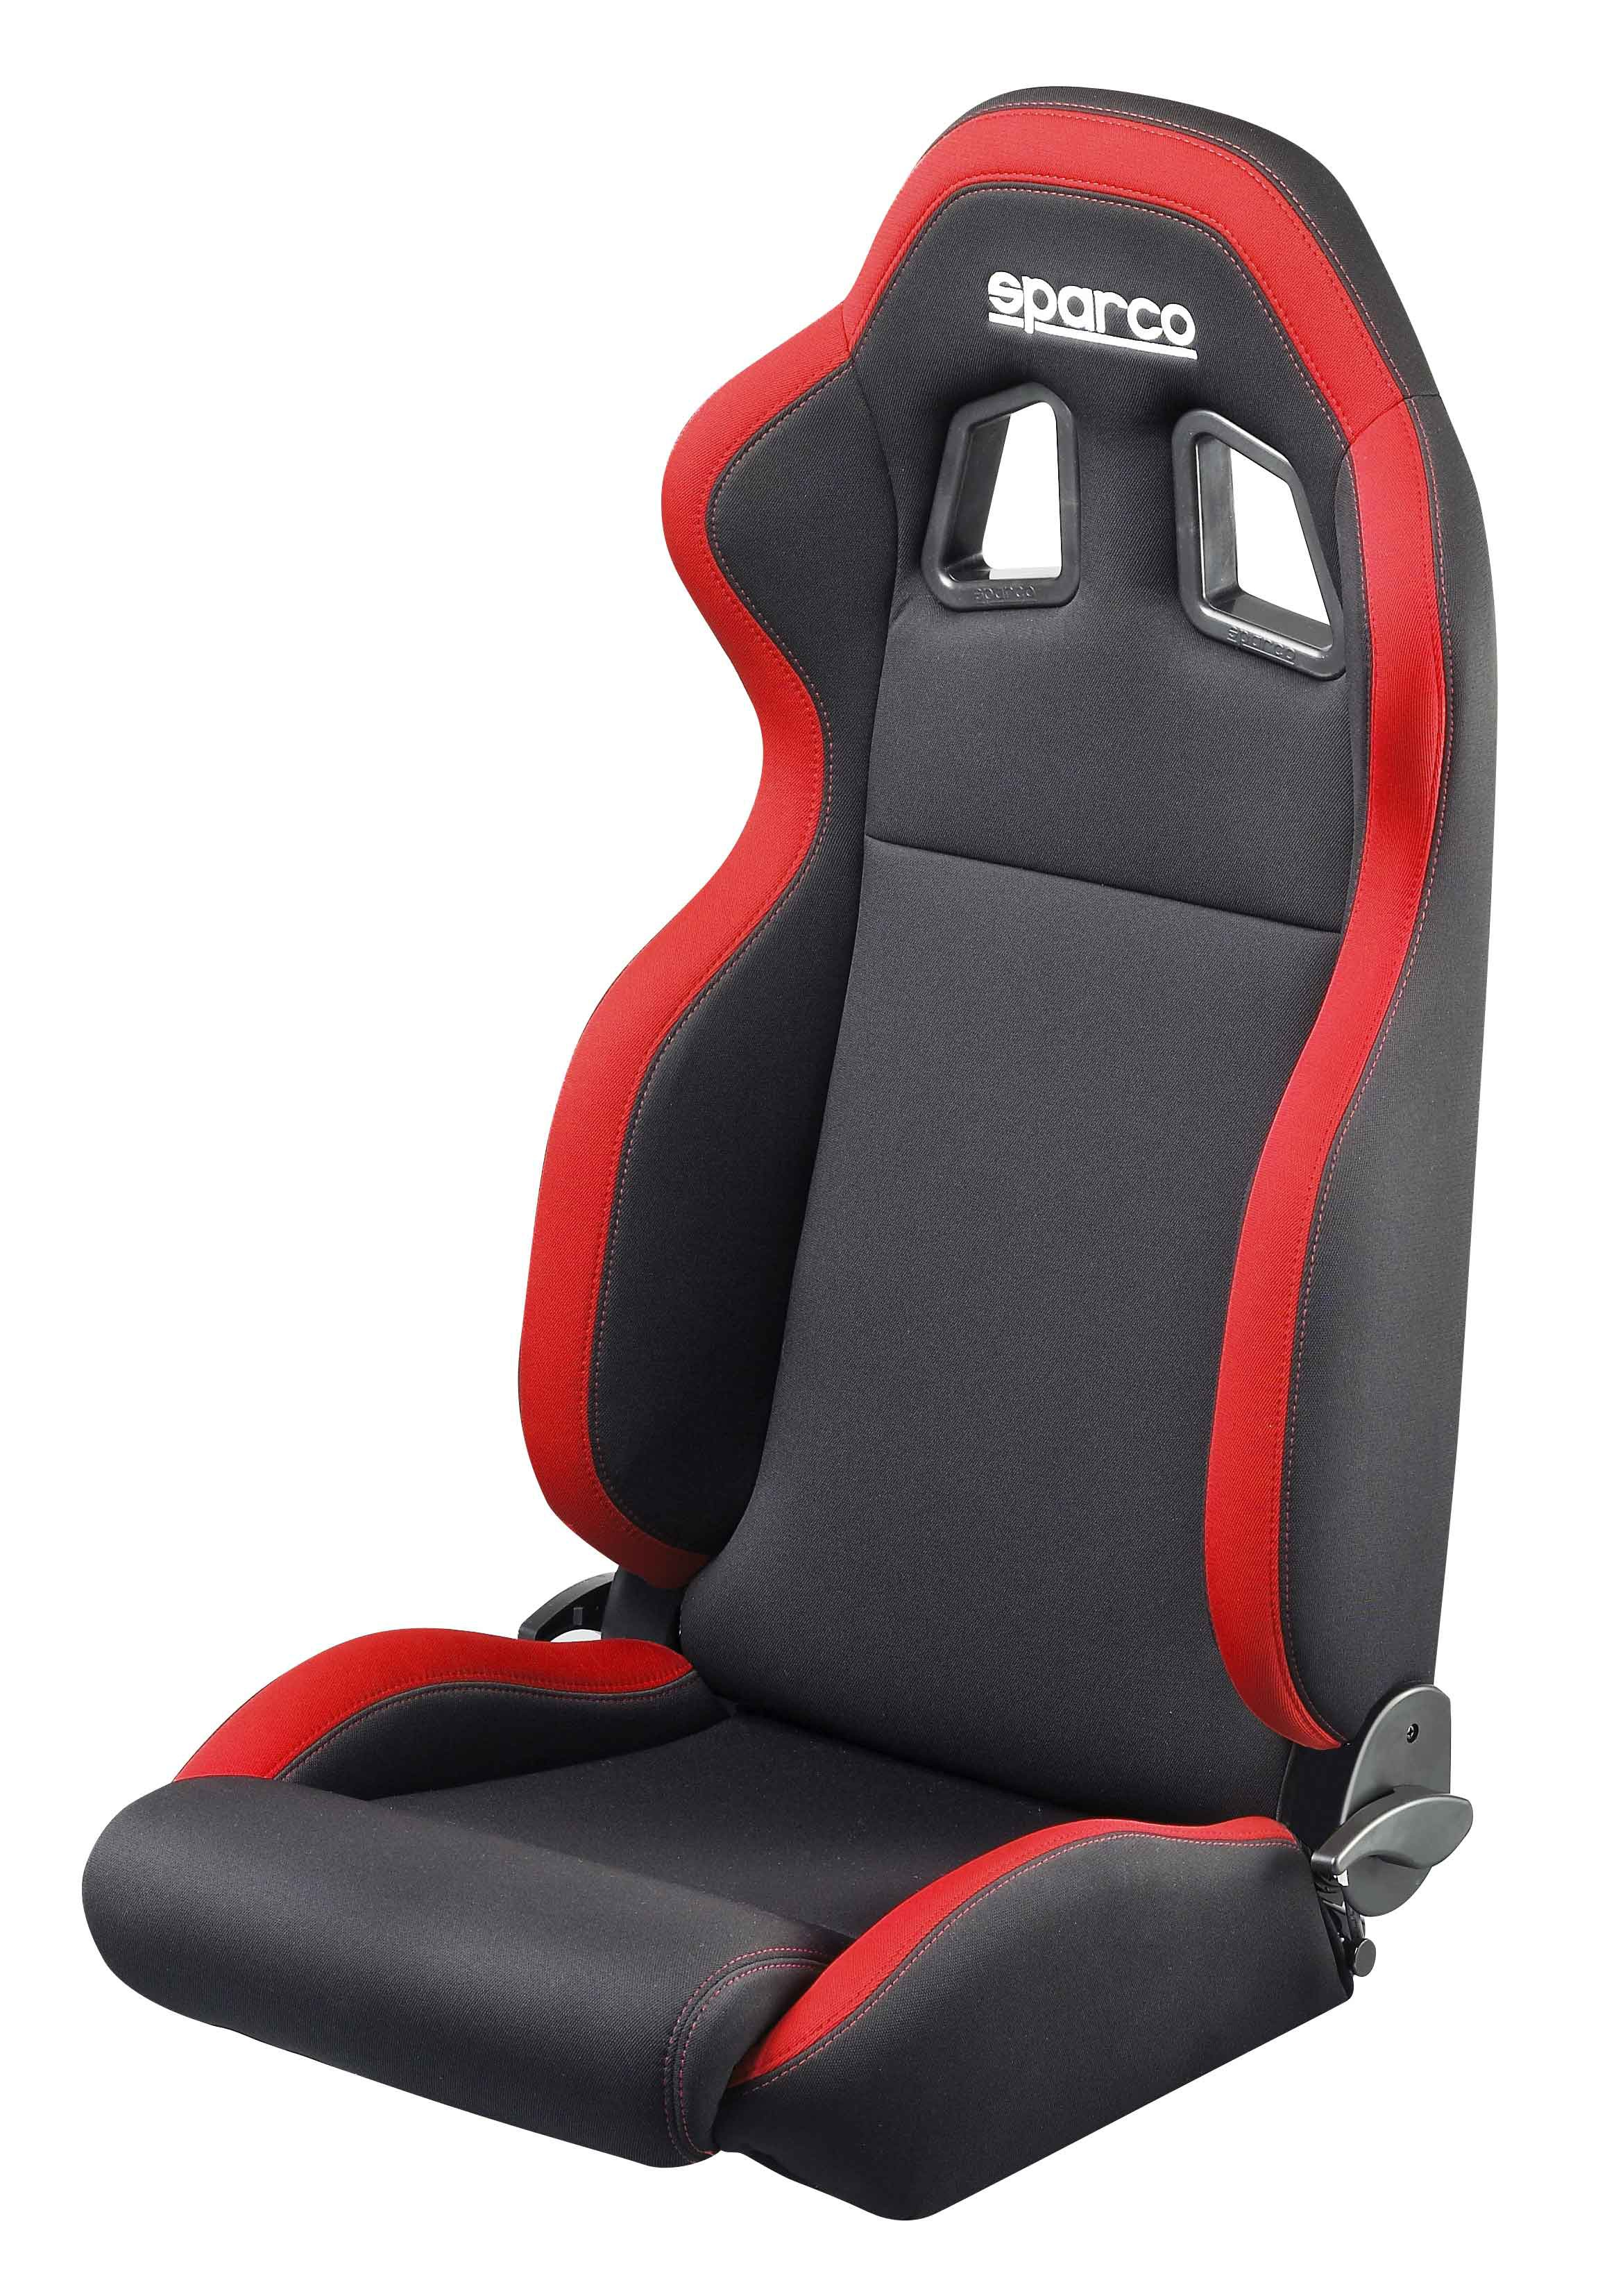 Sparco R100 Racing Seats